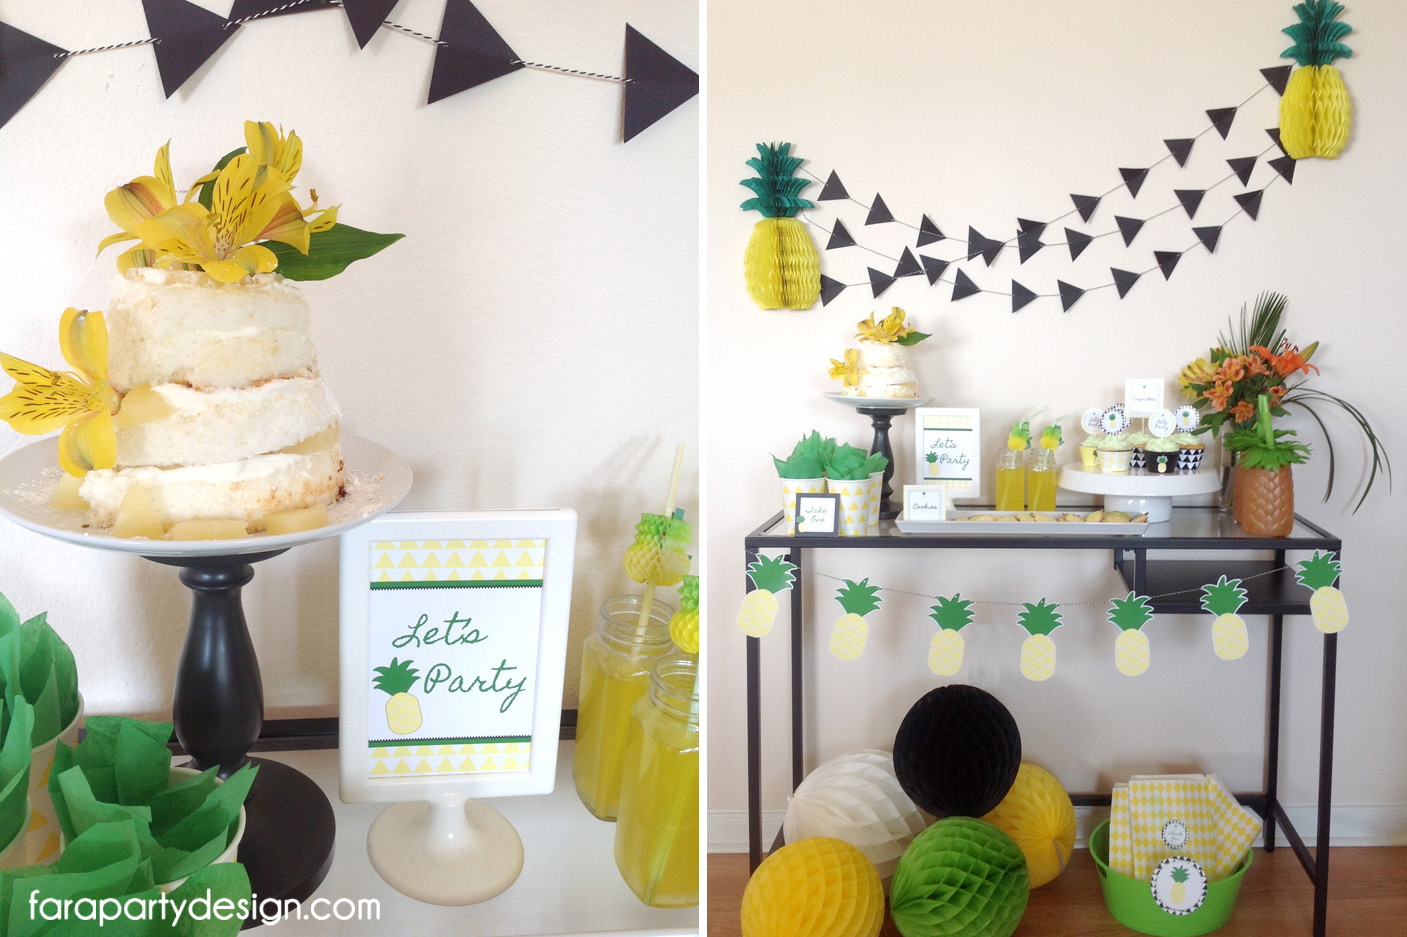 Little things creations fiestas pi as - Decoracion con pina ...